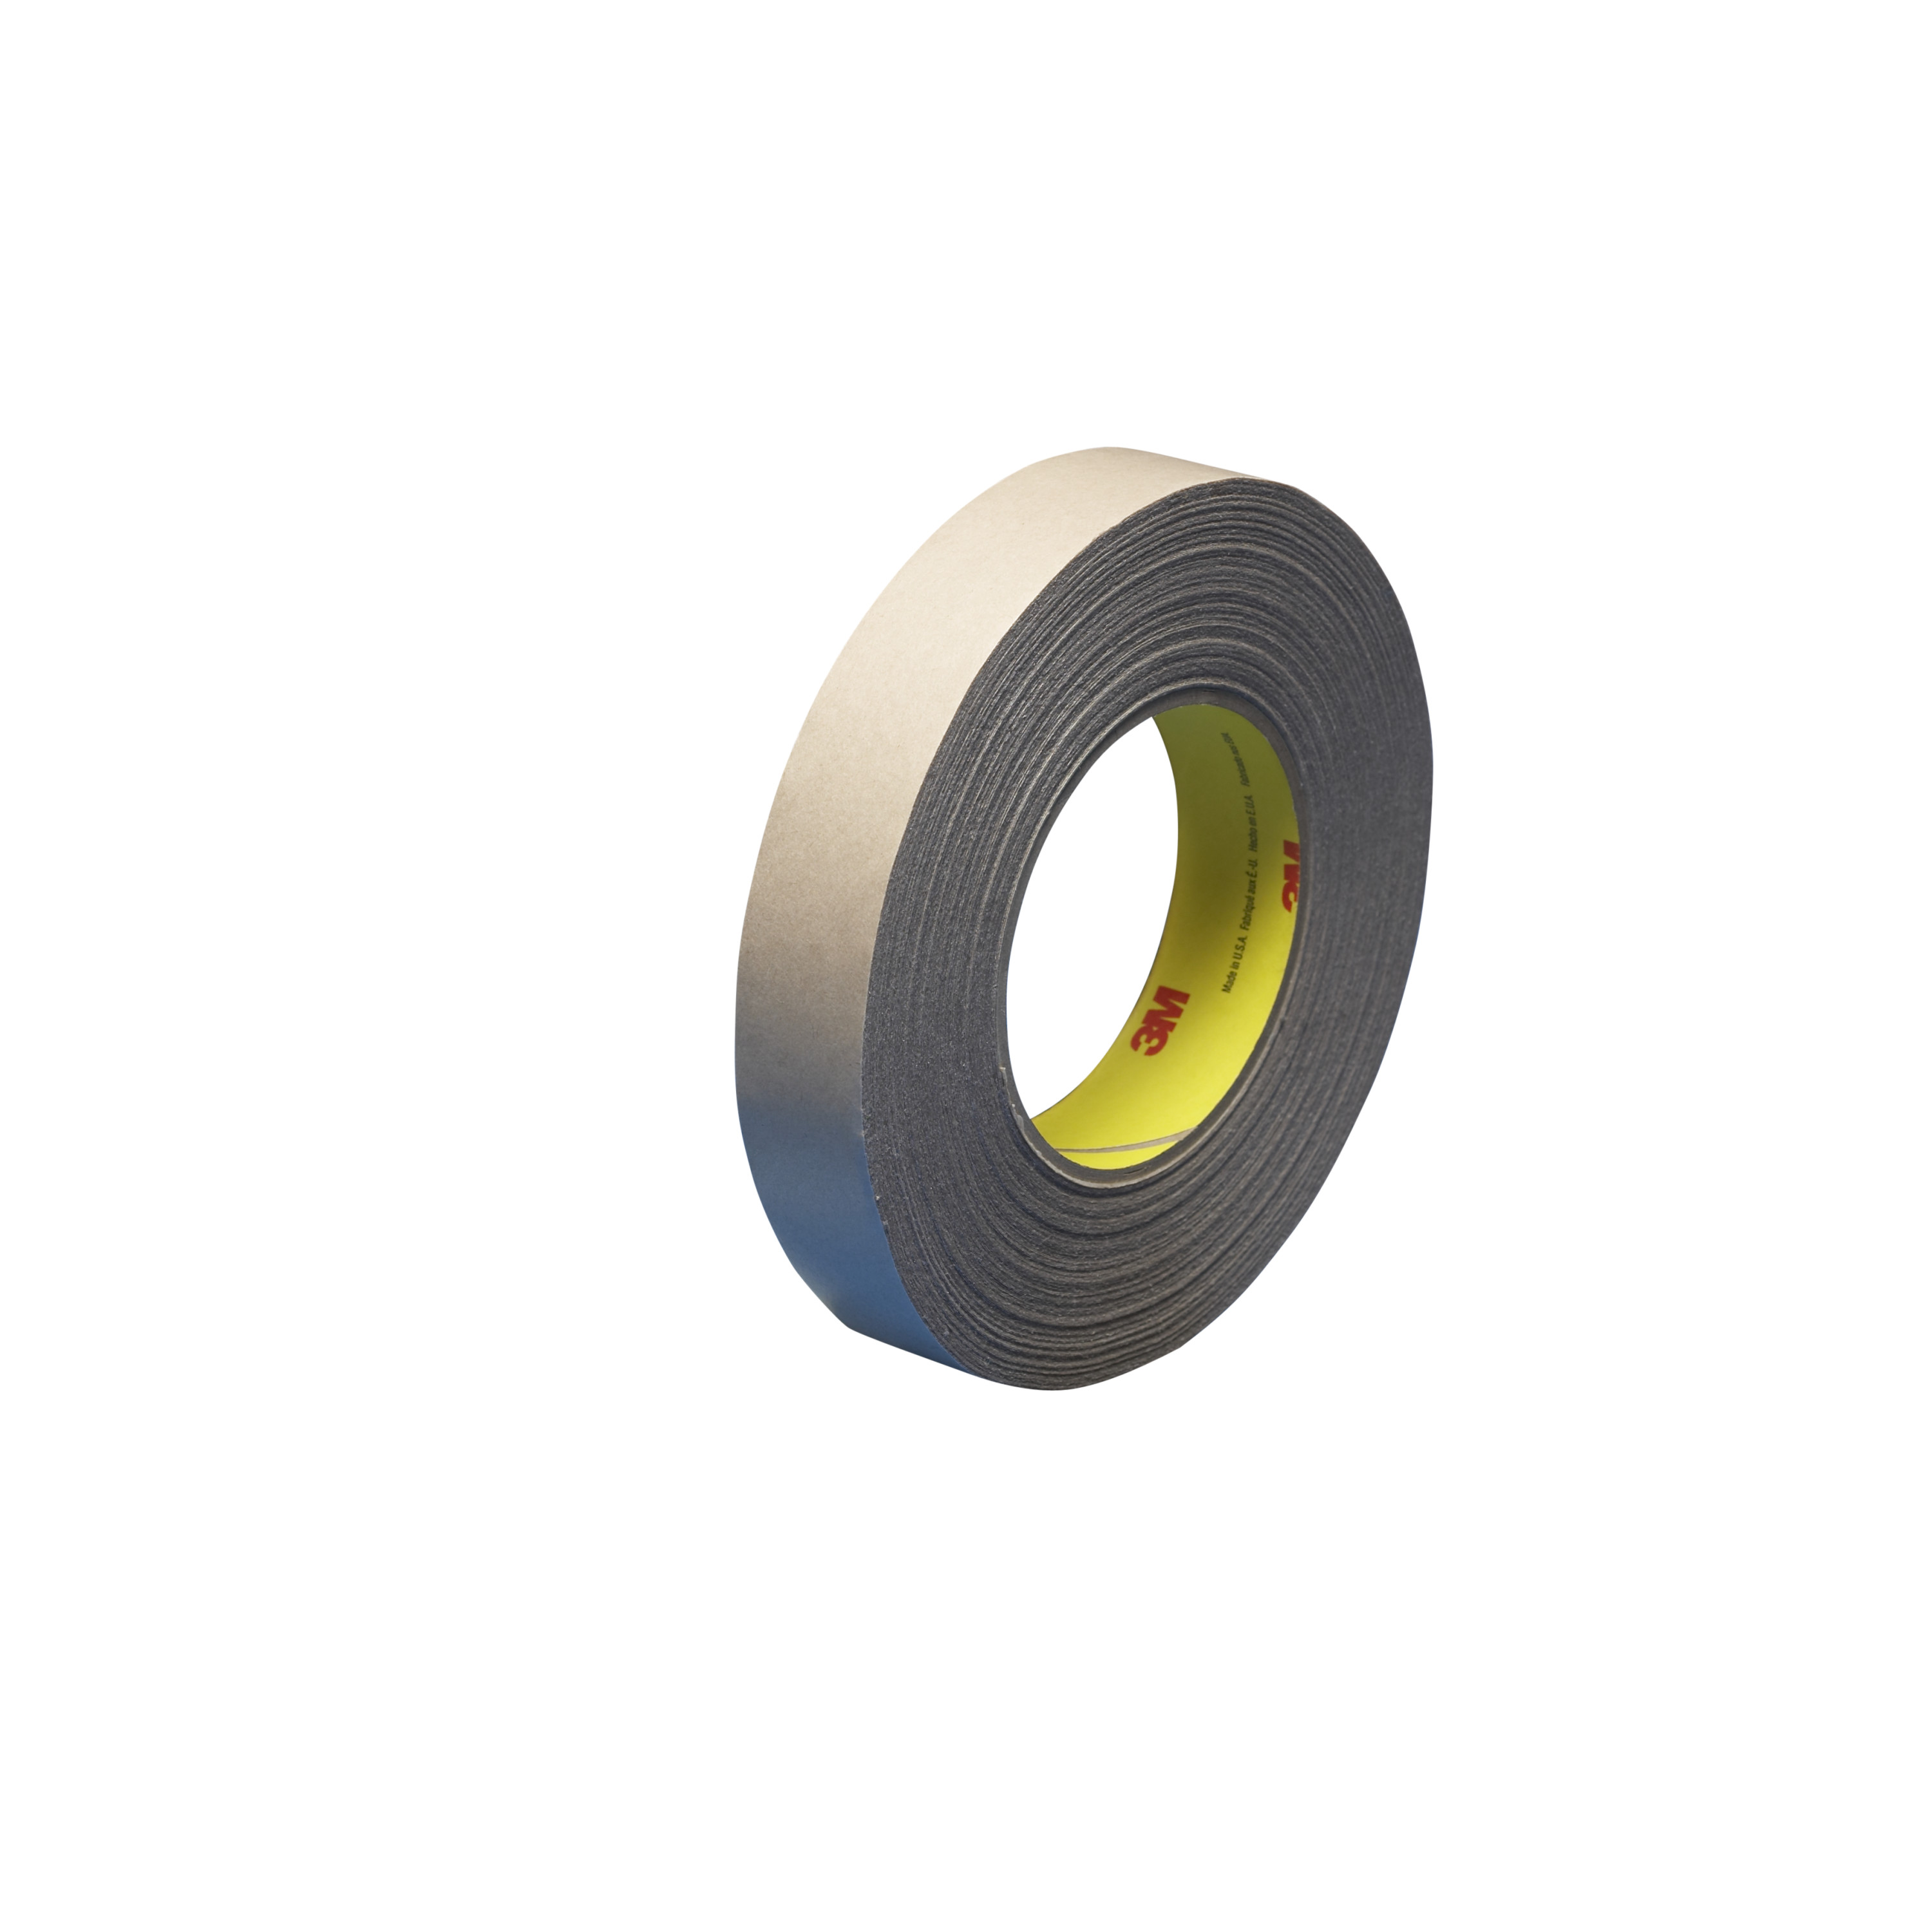 3M™ Double Coated Tape 9628B, Black, 2 mil, Roll, Config